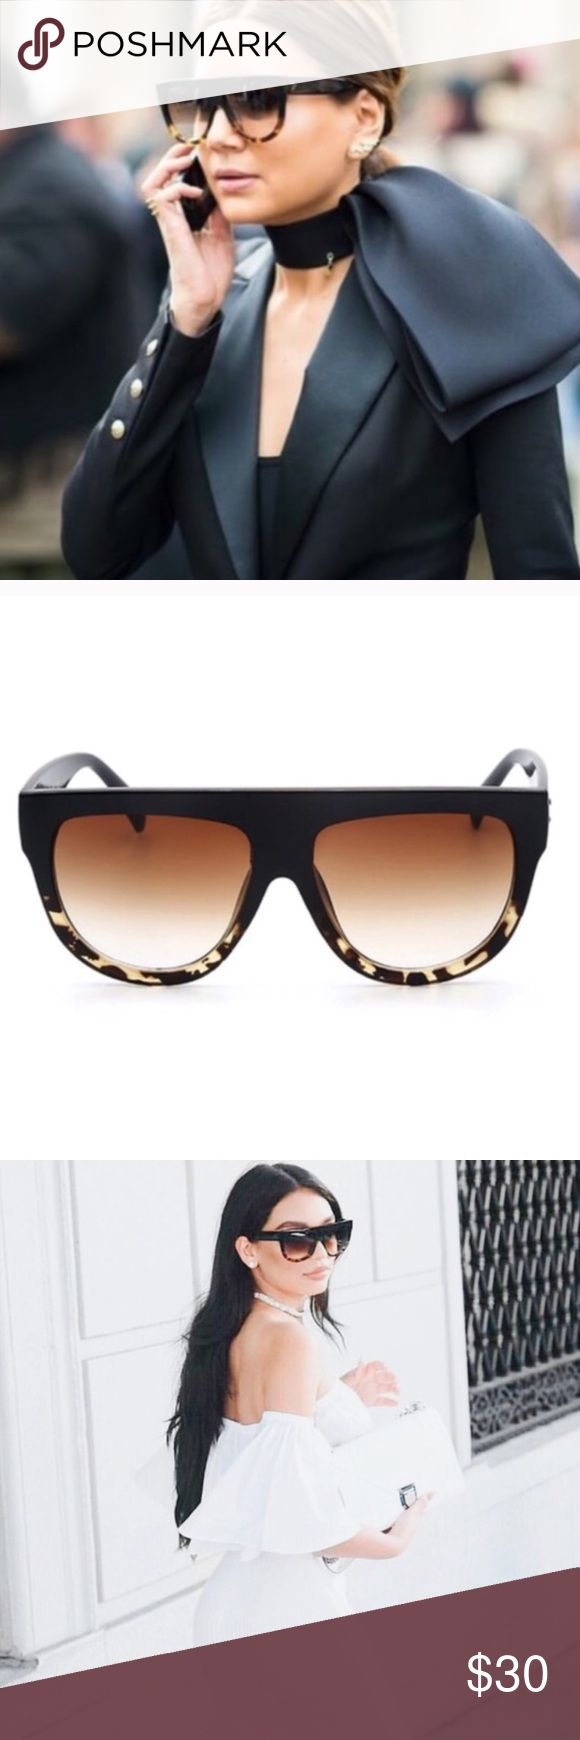 Calabassas Ombré Sunglasses NWT✨ Brand new! Quality luxurious sunglasses. Similar to Quay brand, but only listed for exposure. Quay Australia Accessories Sunglasses